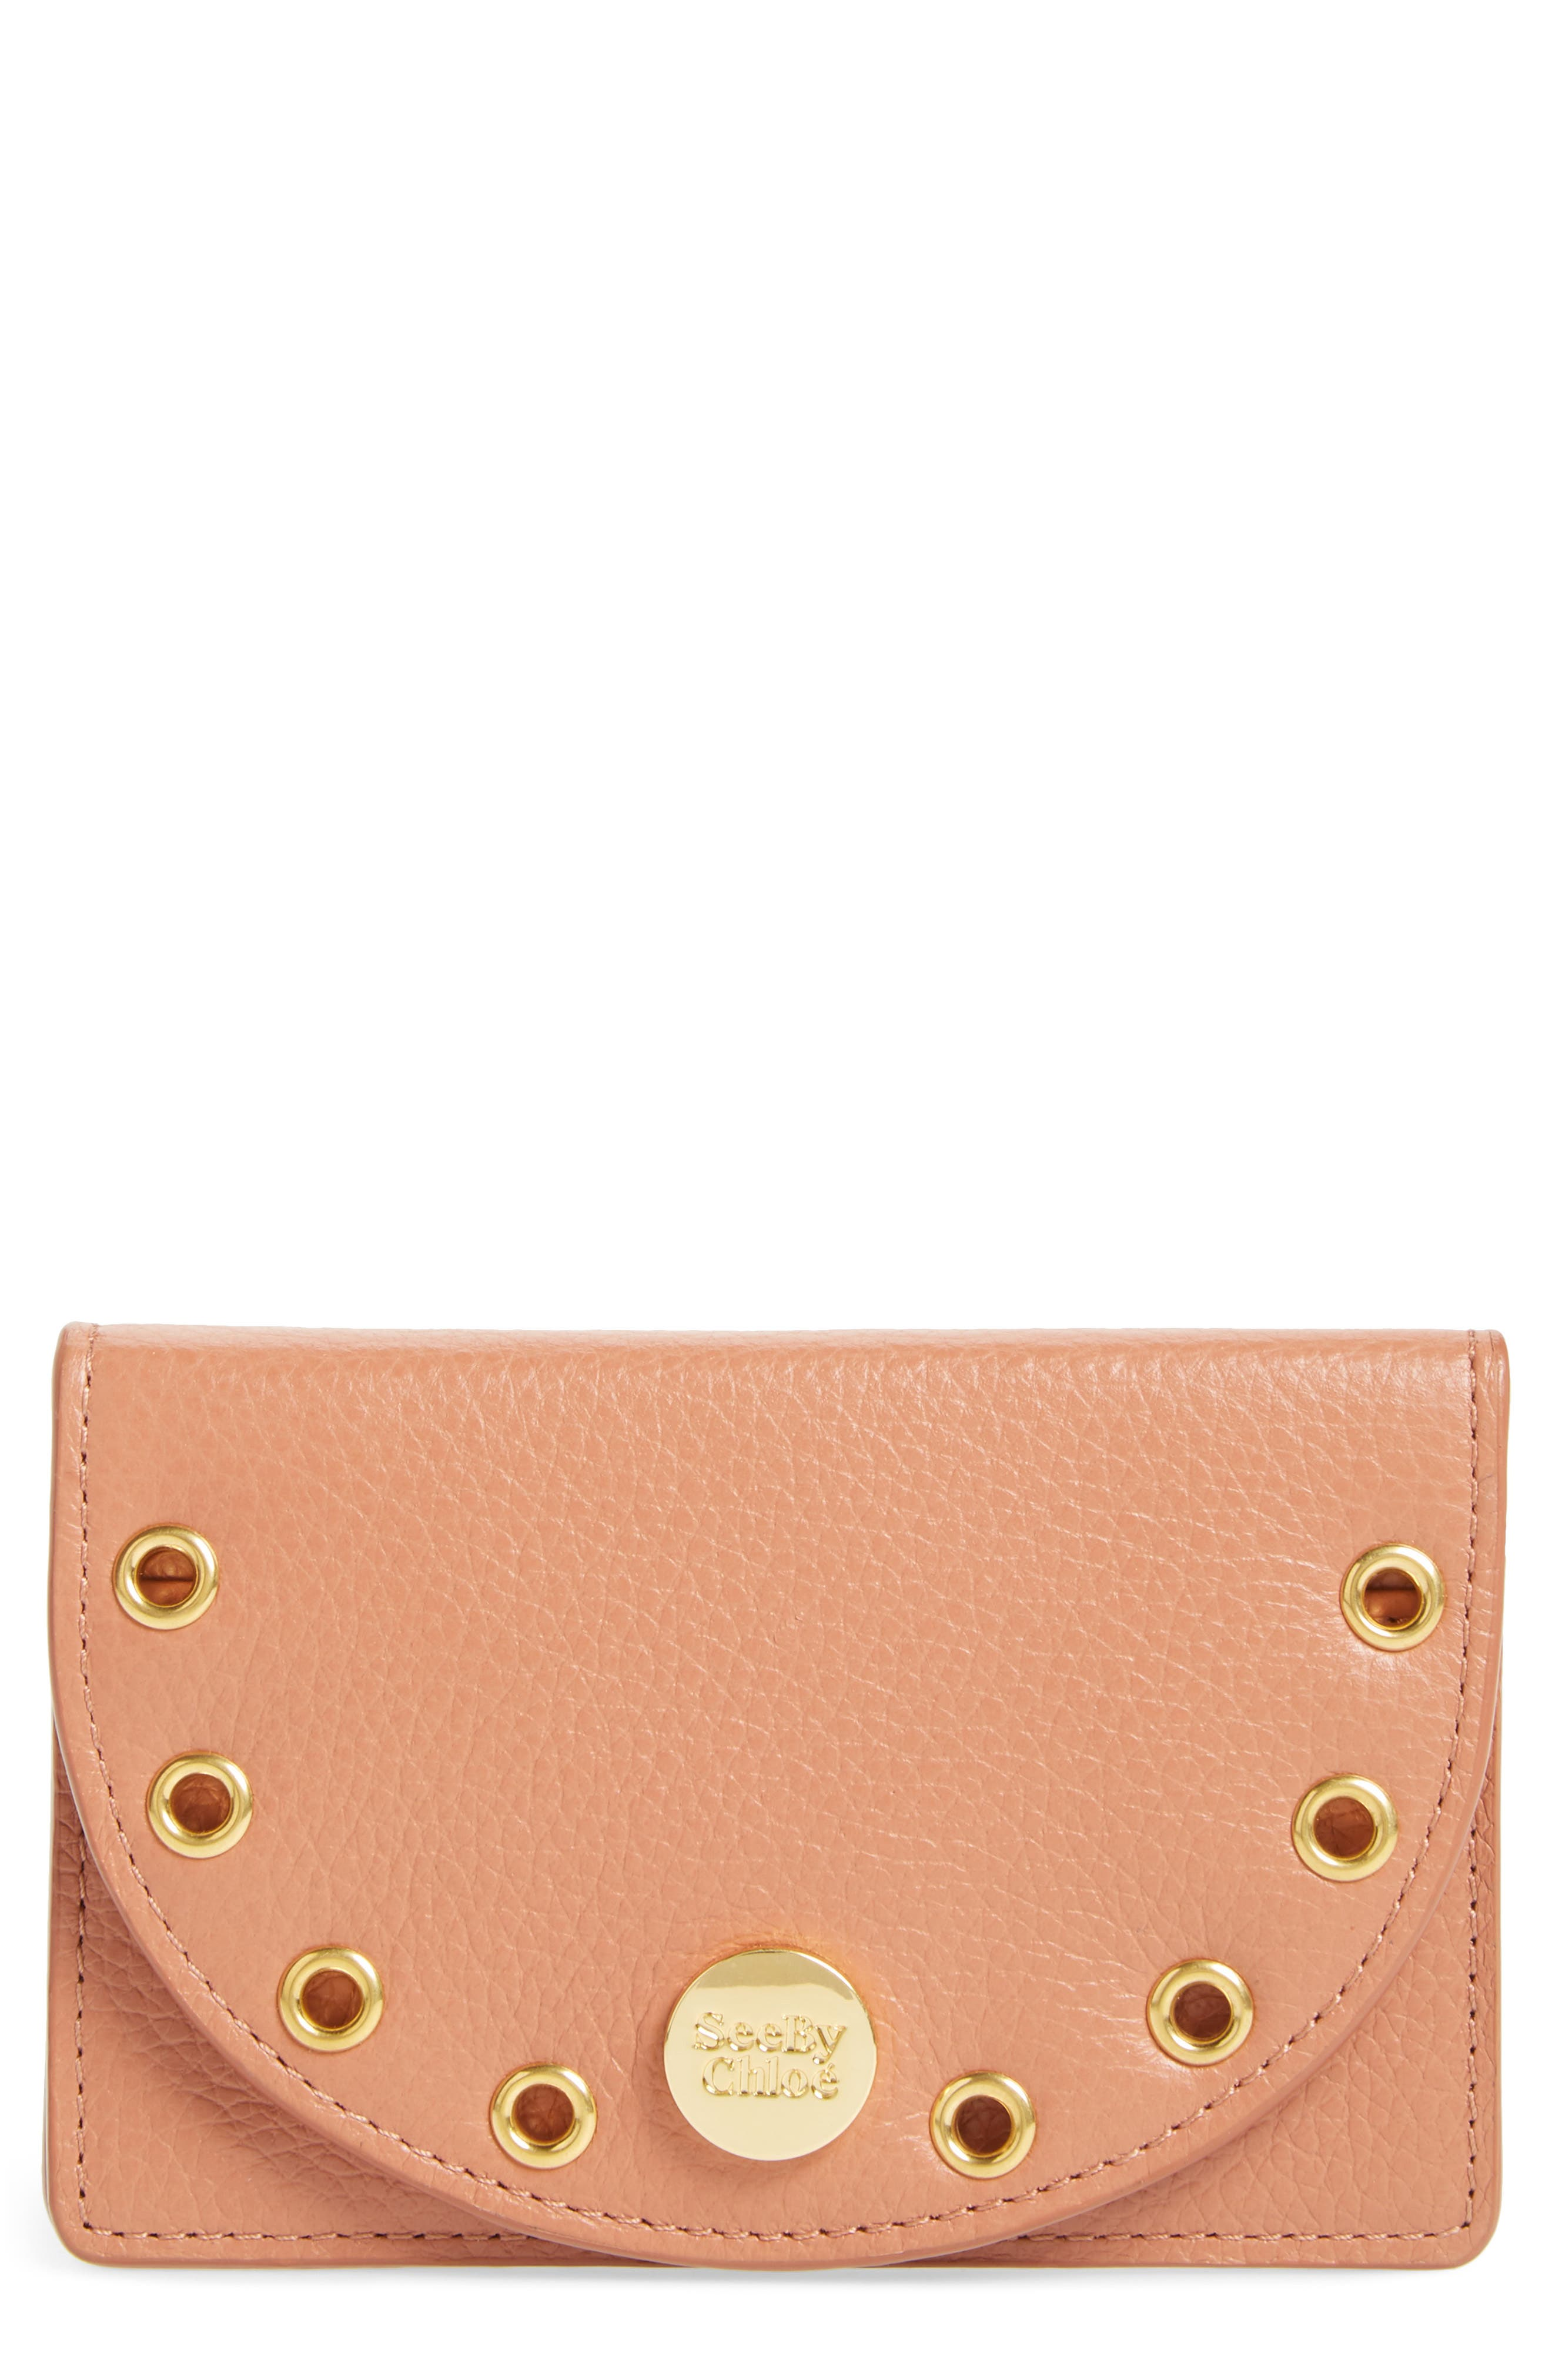 Alternate Image 1 Selected - See by Chloé Kriss Grommet Leather Card Wallet